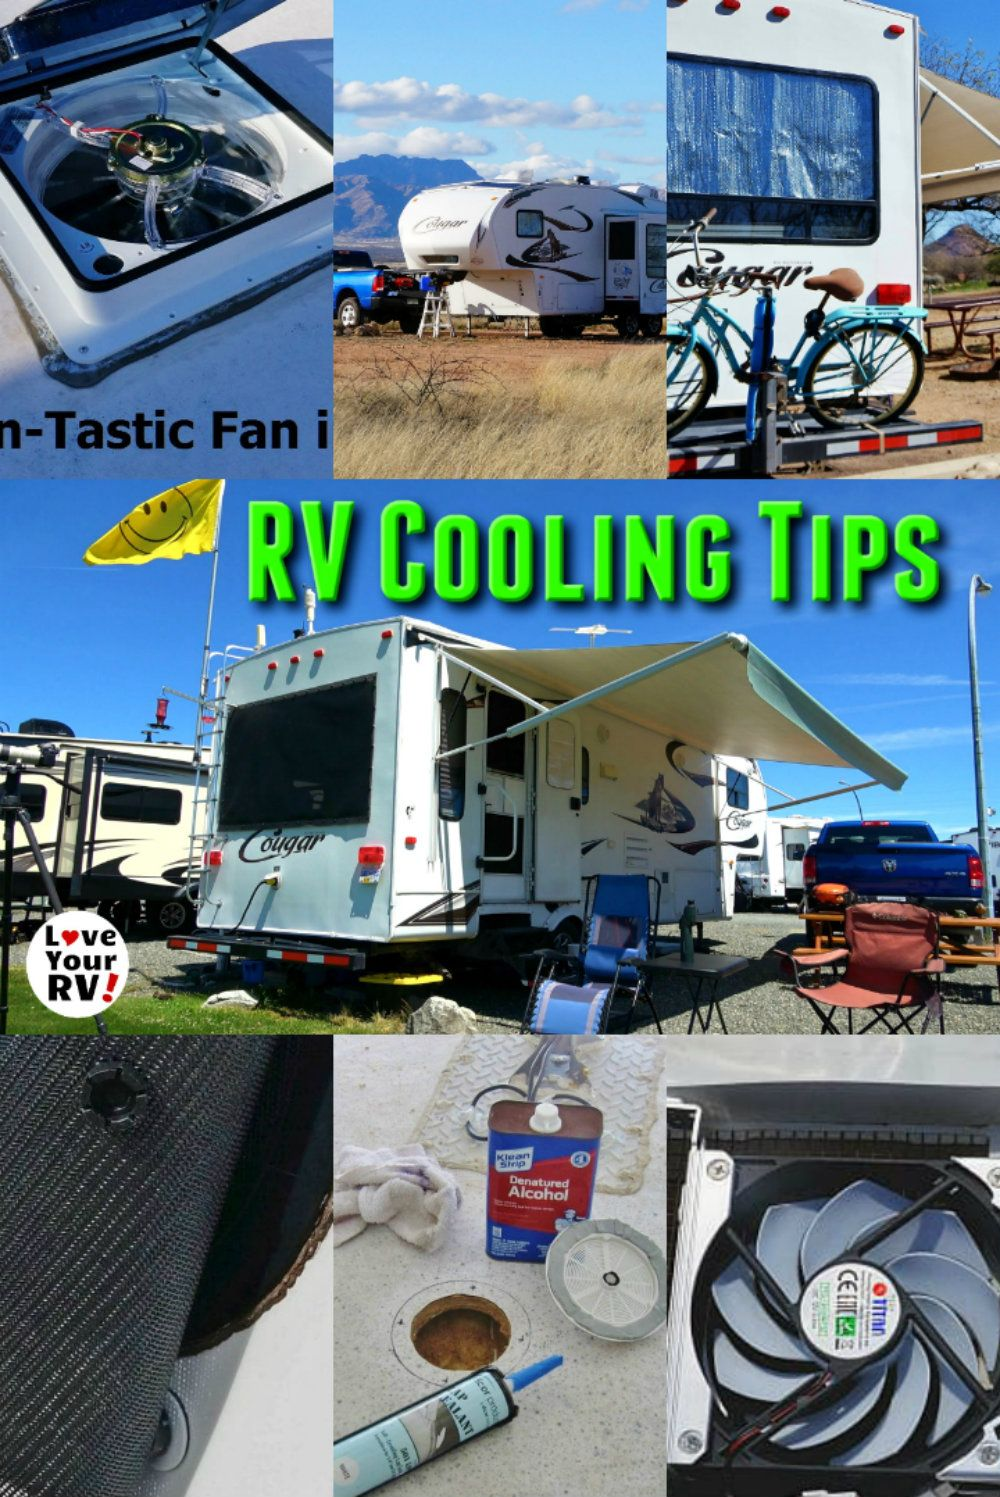 Tips for Keeping the RV Cool Without AC Camper repair